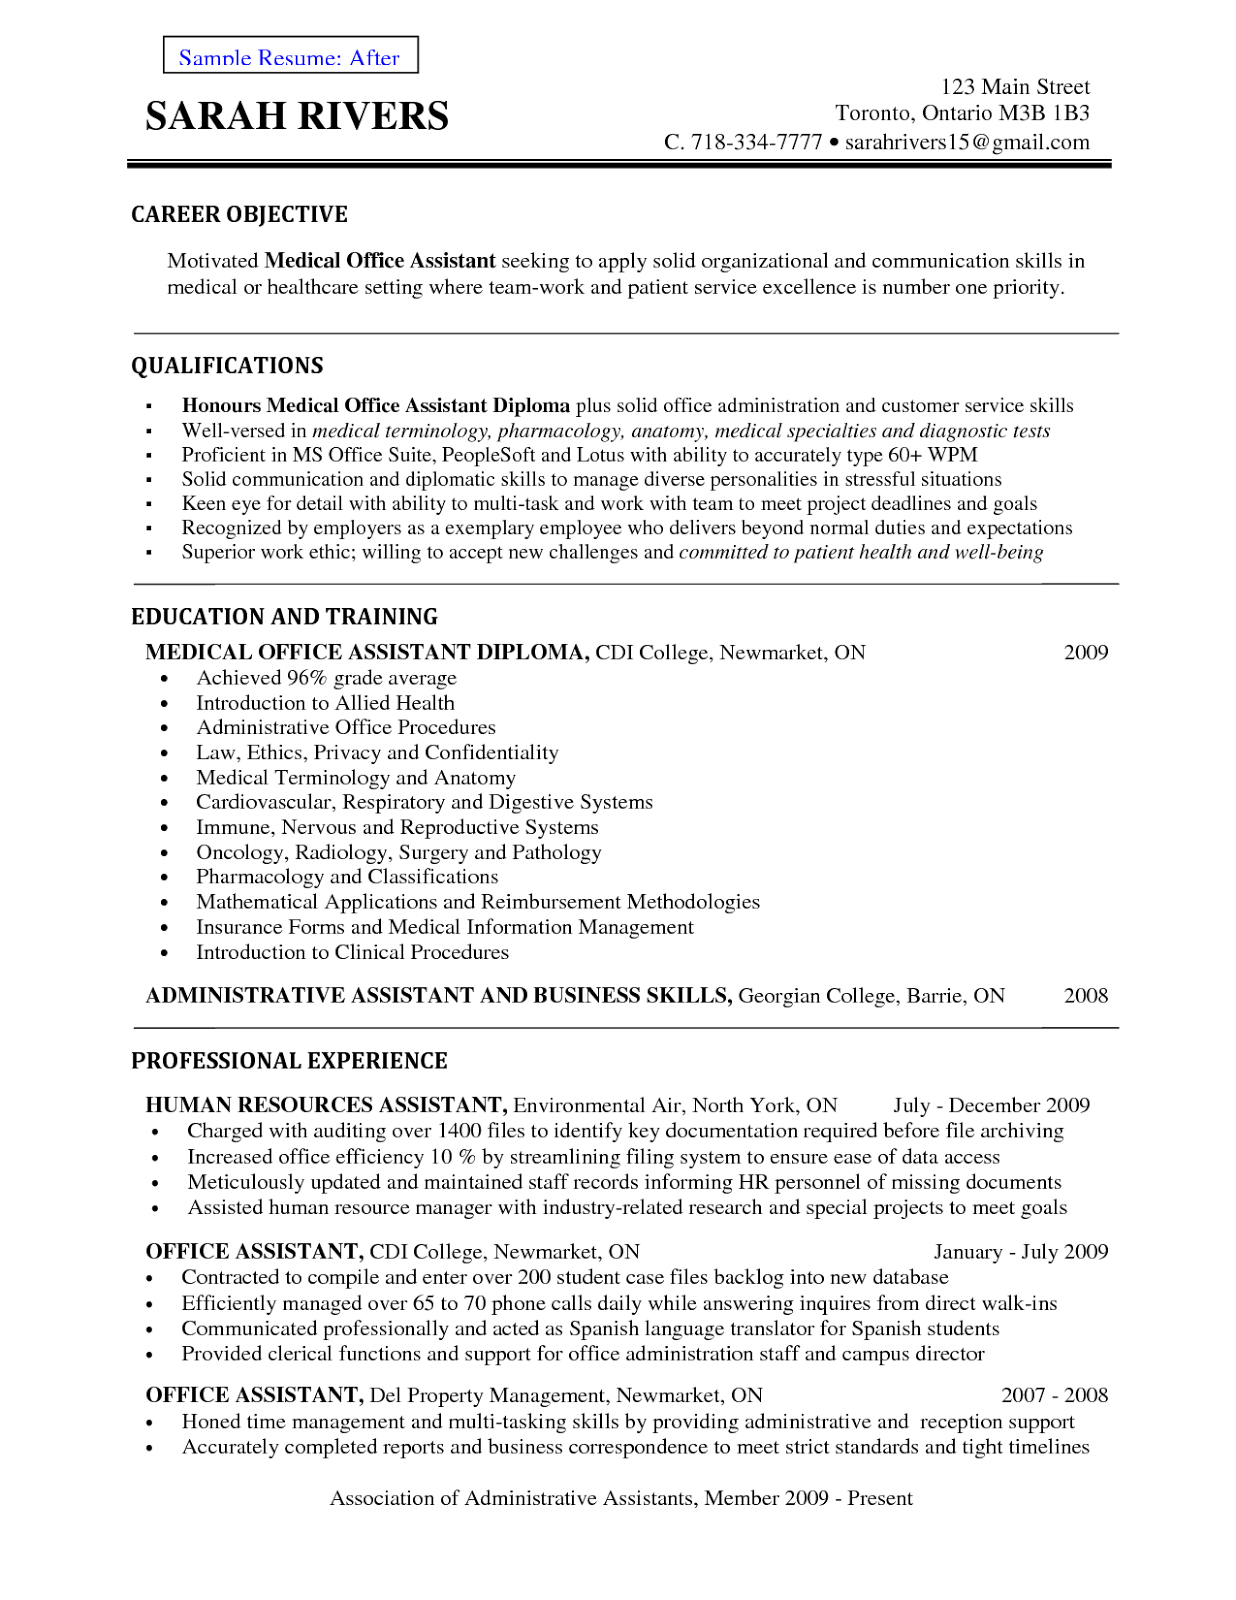 nursing assistant resume examples sample dental assistant resume with experience nursing assistant resume experience maker create